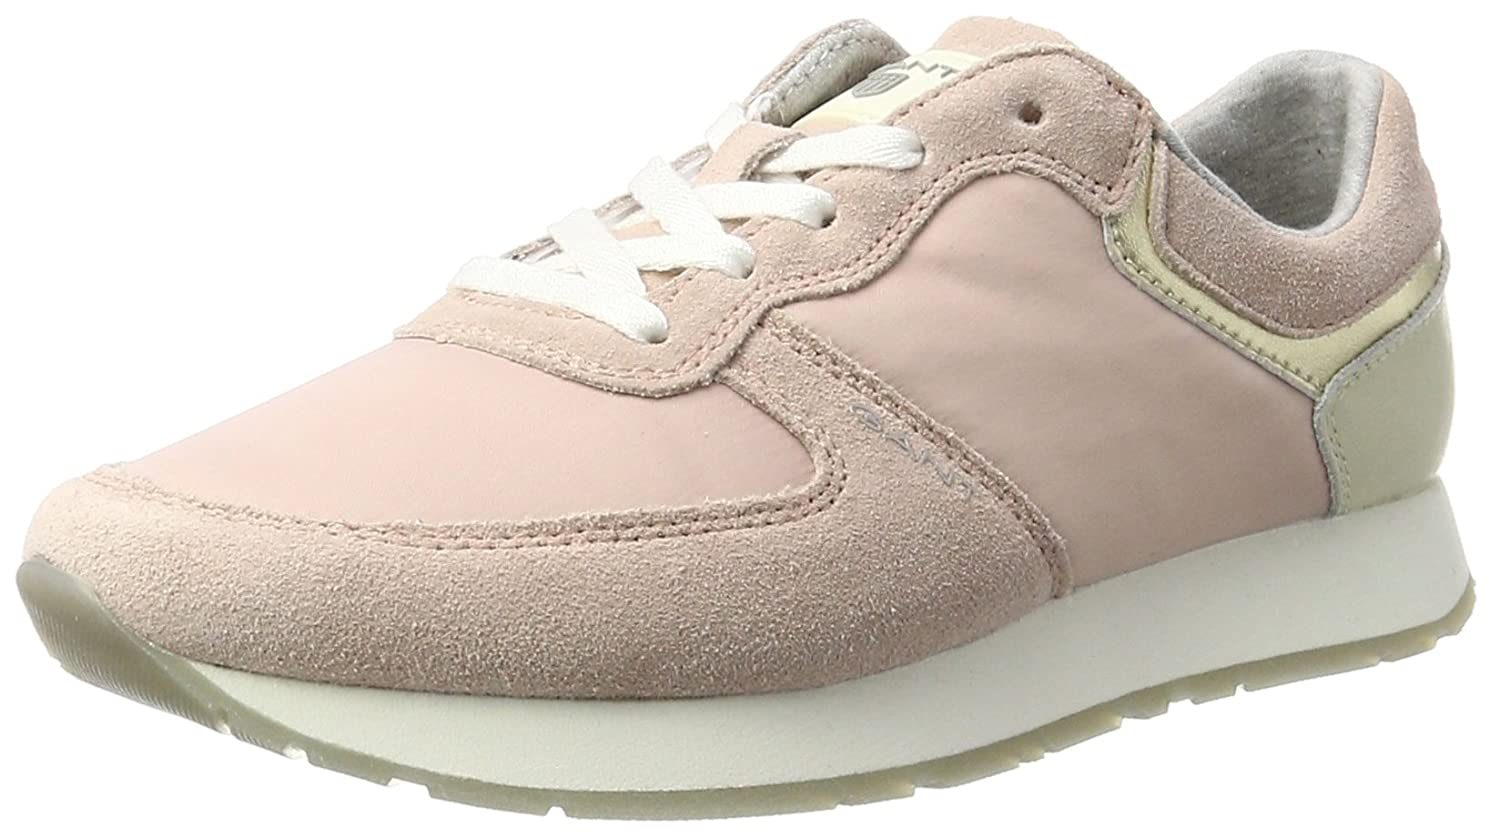 Gant Pink Linda, Basses Femme Pink (Dusty (Dusty Basses Pink) 44fe009 - latesttechnology.space